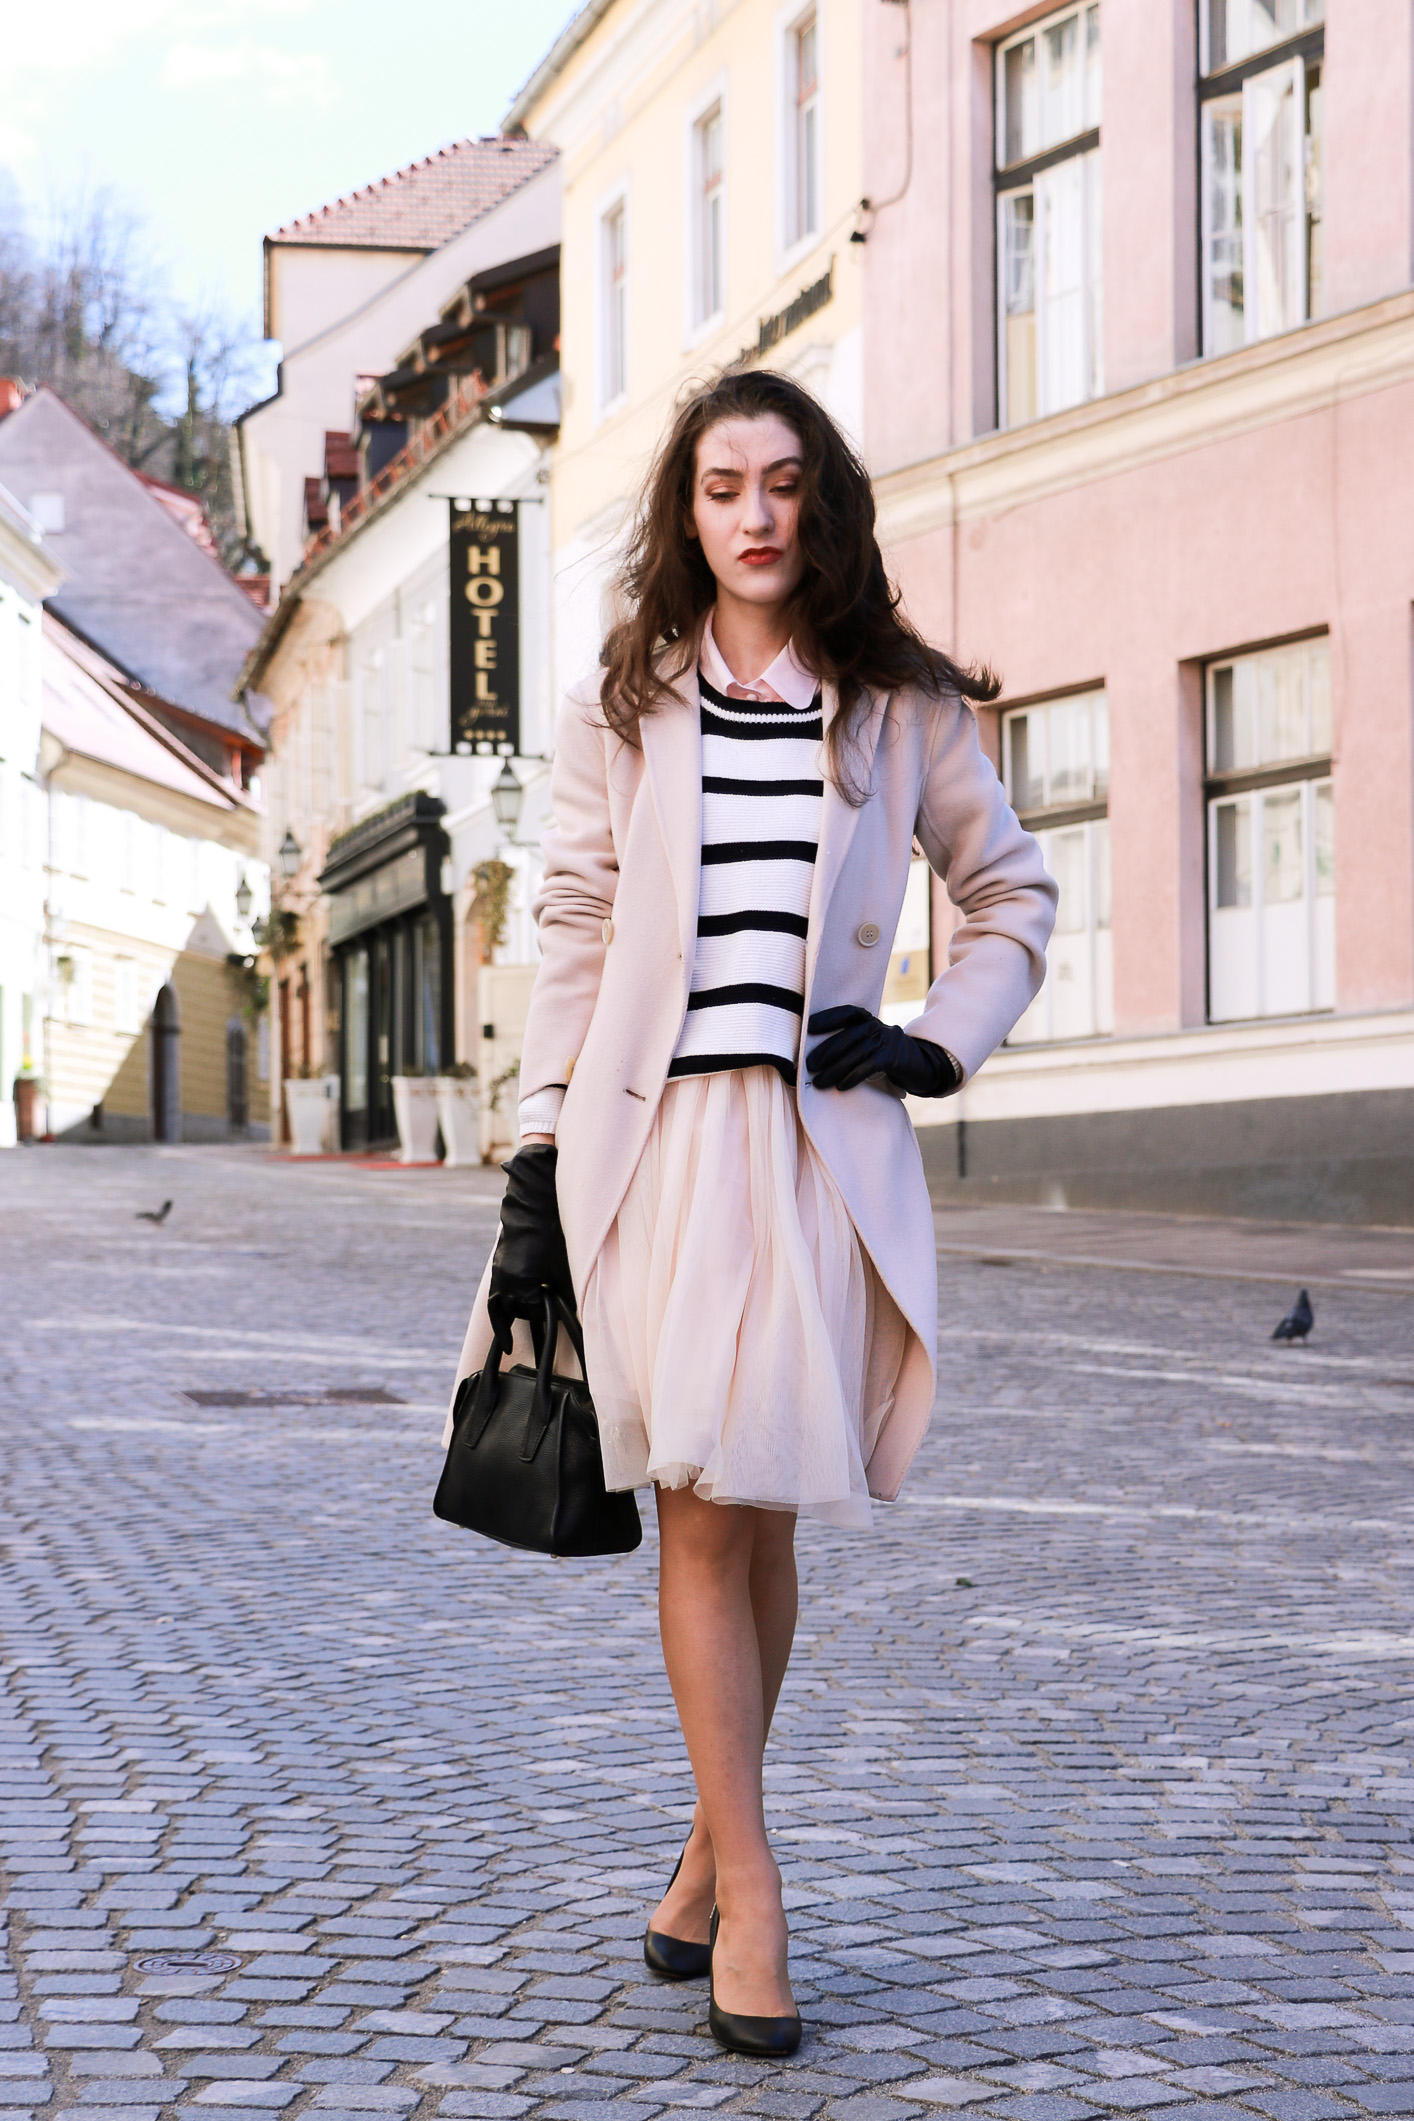 Fashion blogger Veronika Lipar of Brunette From Wall Street sharing how to style tulle midi skirt